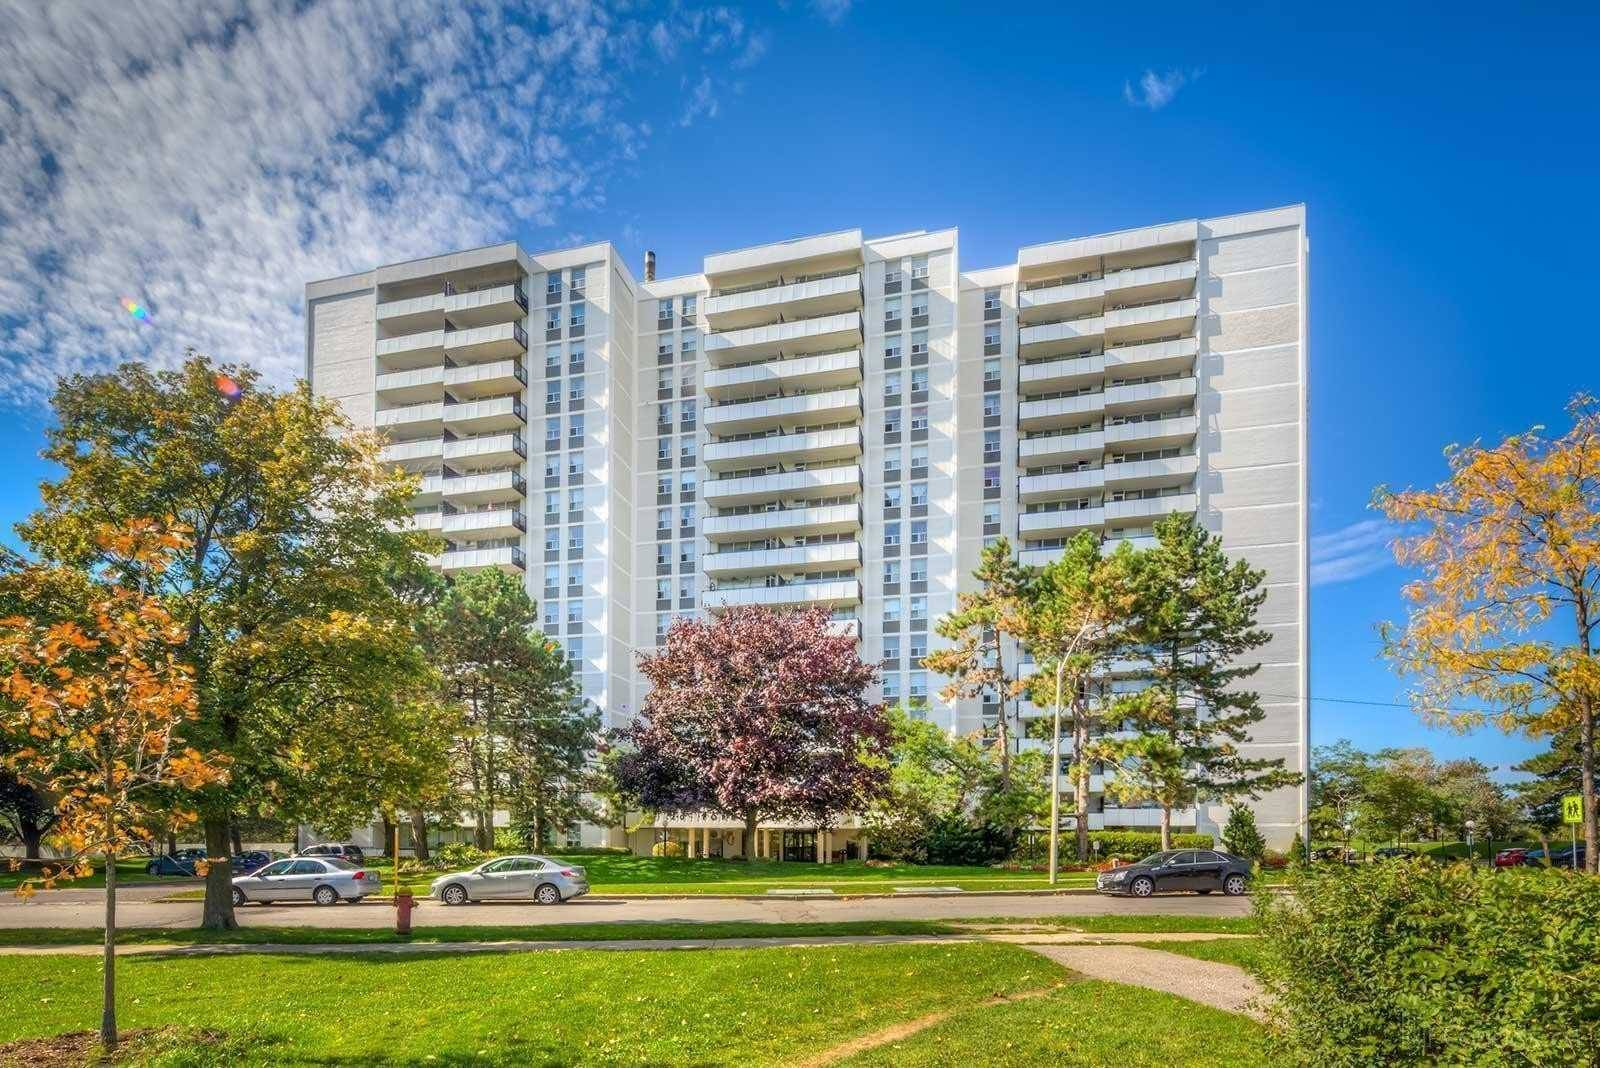 20 Forest Manor Condos: 20 Forest Manor Road, Toronto, ON